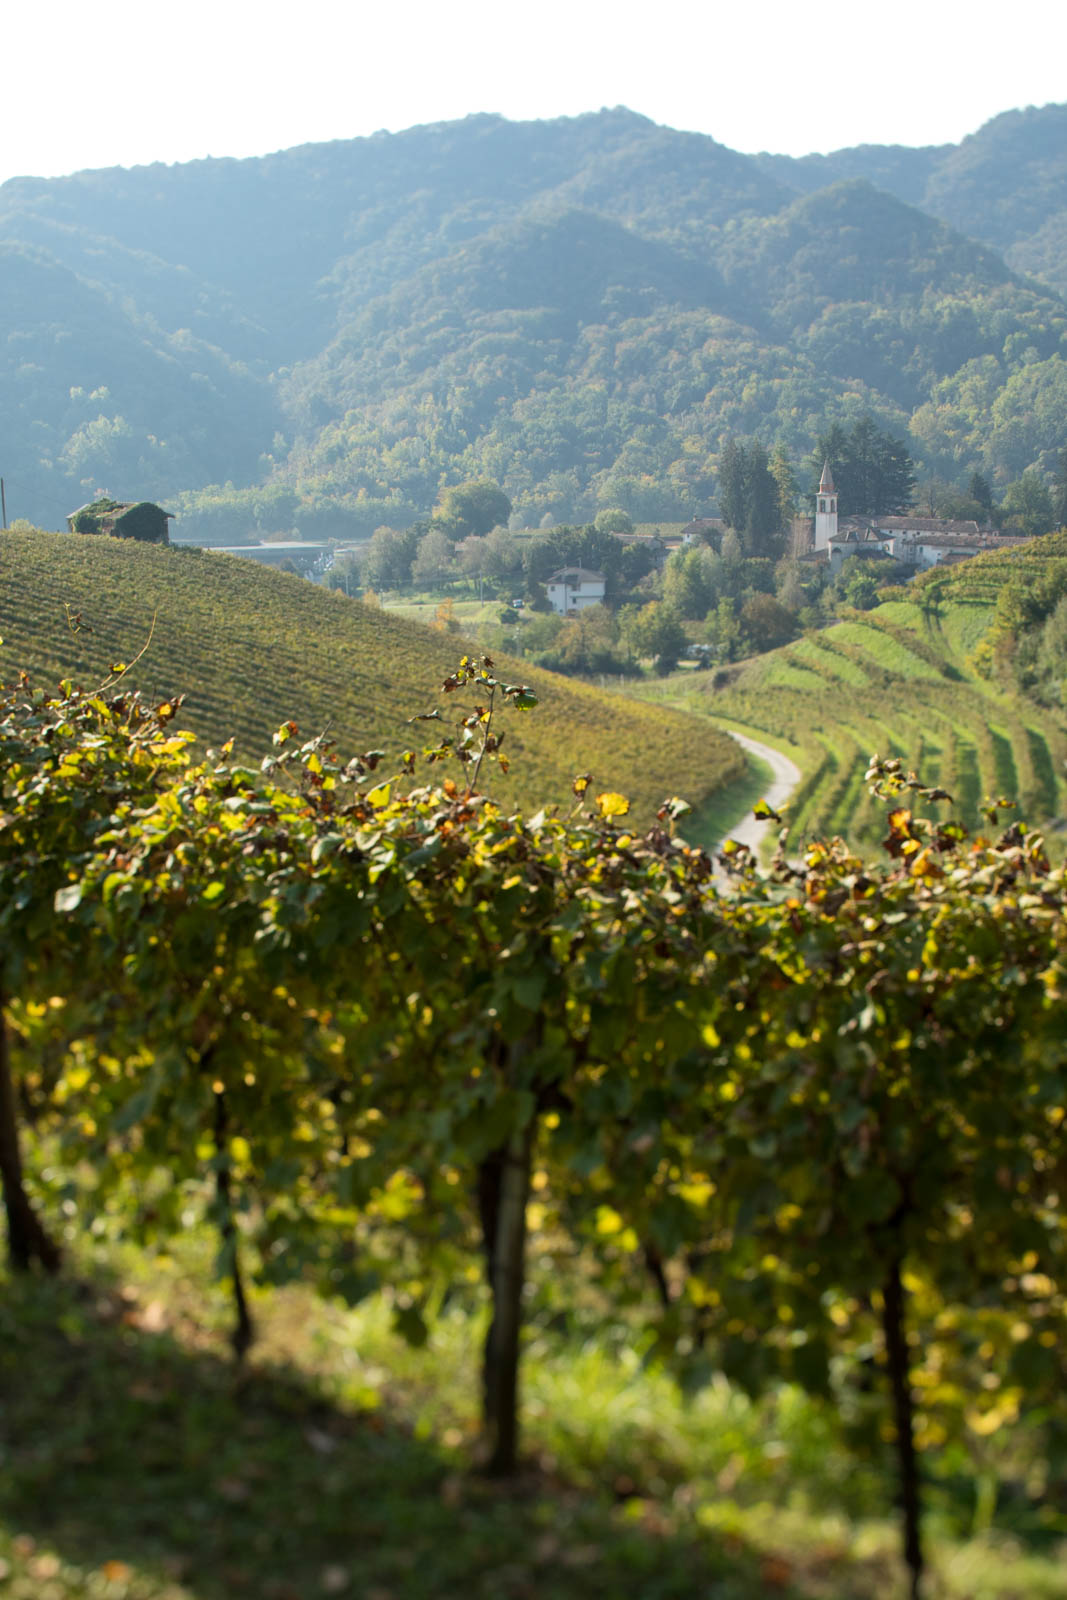 A view of the village of Campea from the Rive di Campea vineyard that Bisol owns. ©Kevin Day/Opening a Bottle